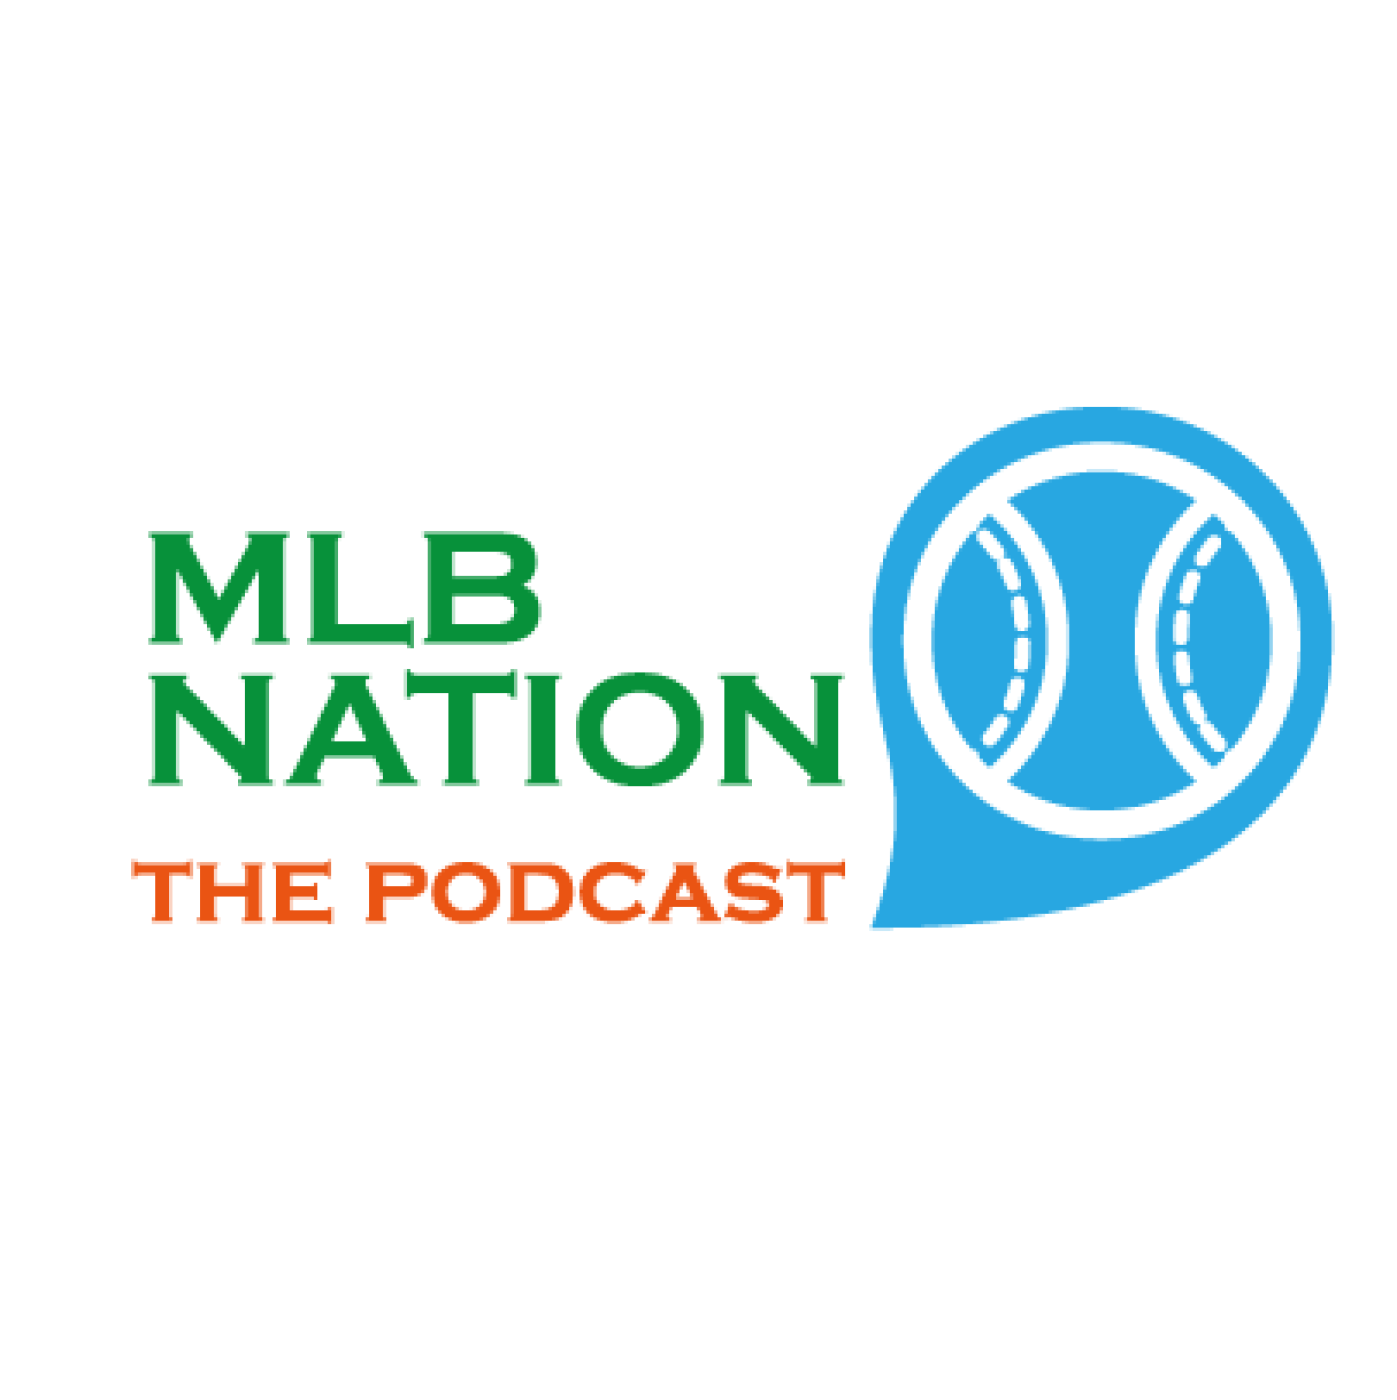 MLBNATION the Podcast